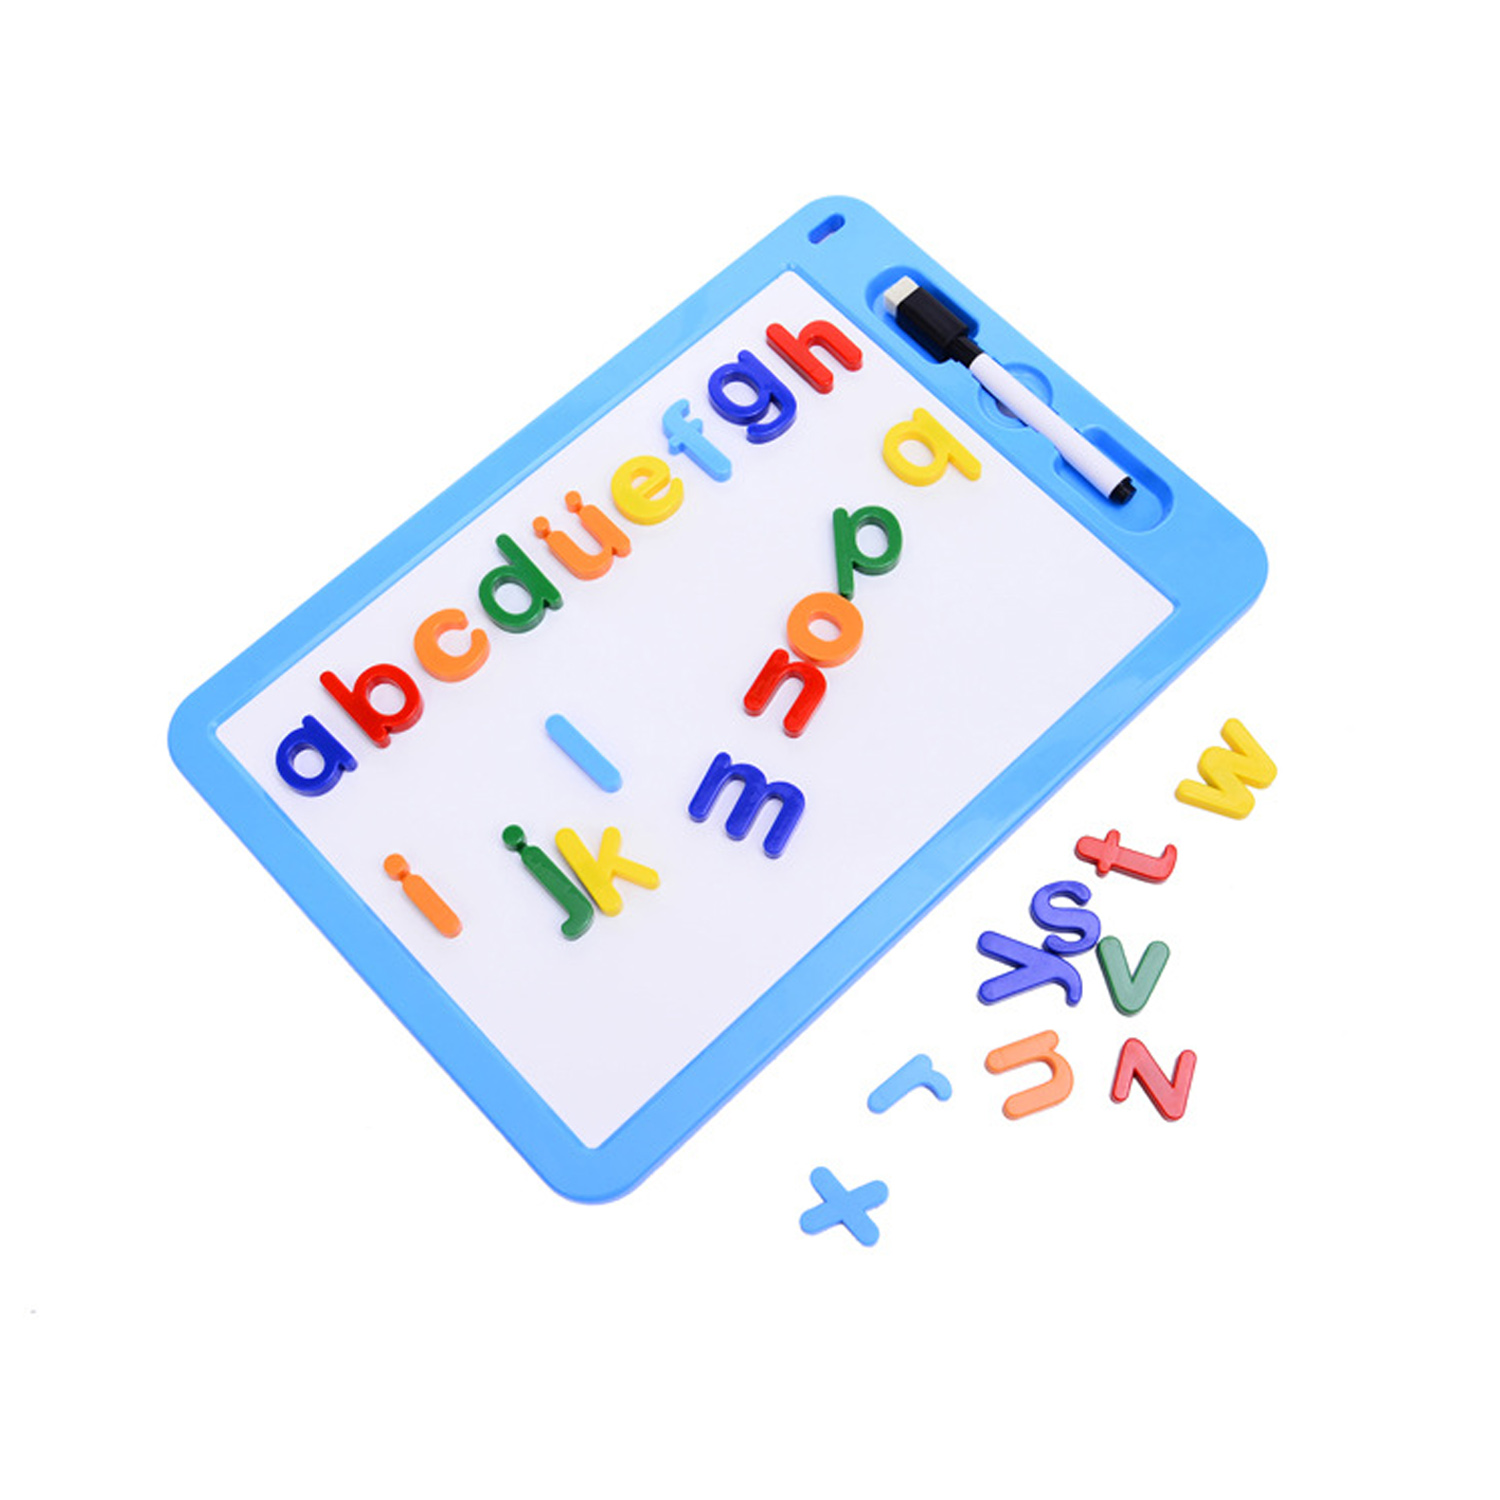 89pcs/Set Magnetic Learning Numbers Alphabet Letters Toddlers Kids Preschool Learning Spelling Counting Educational Toys